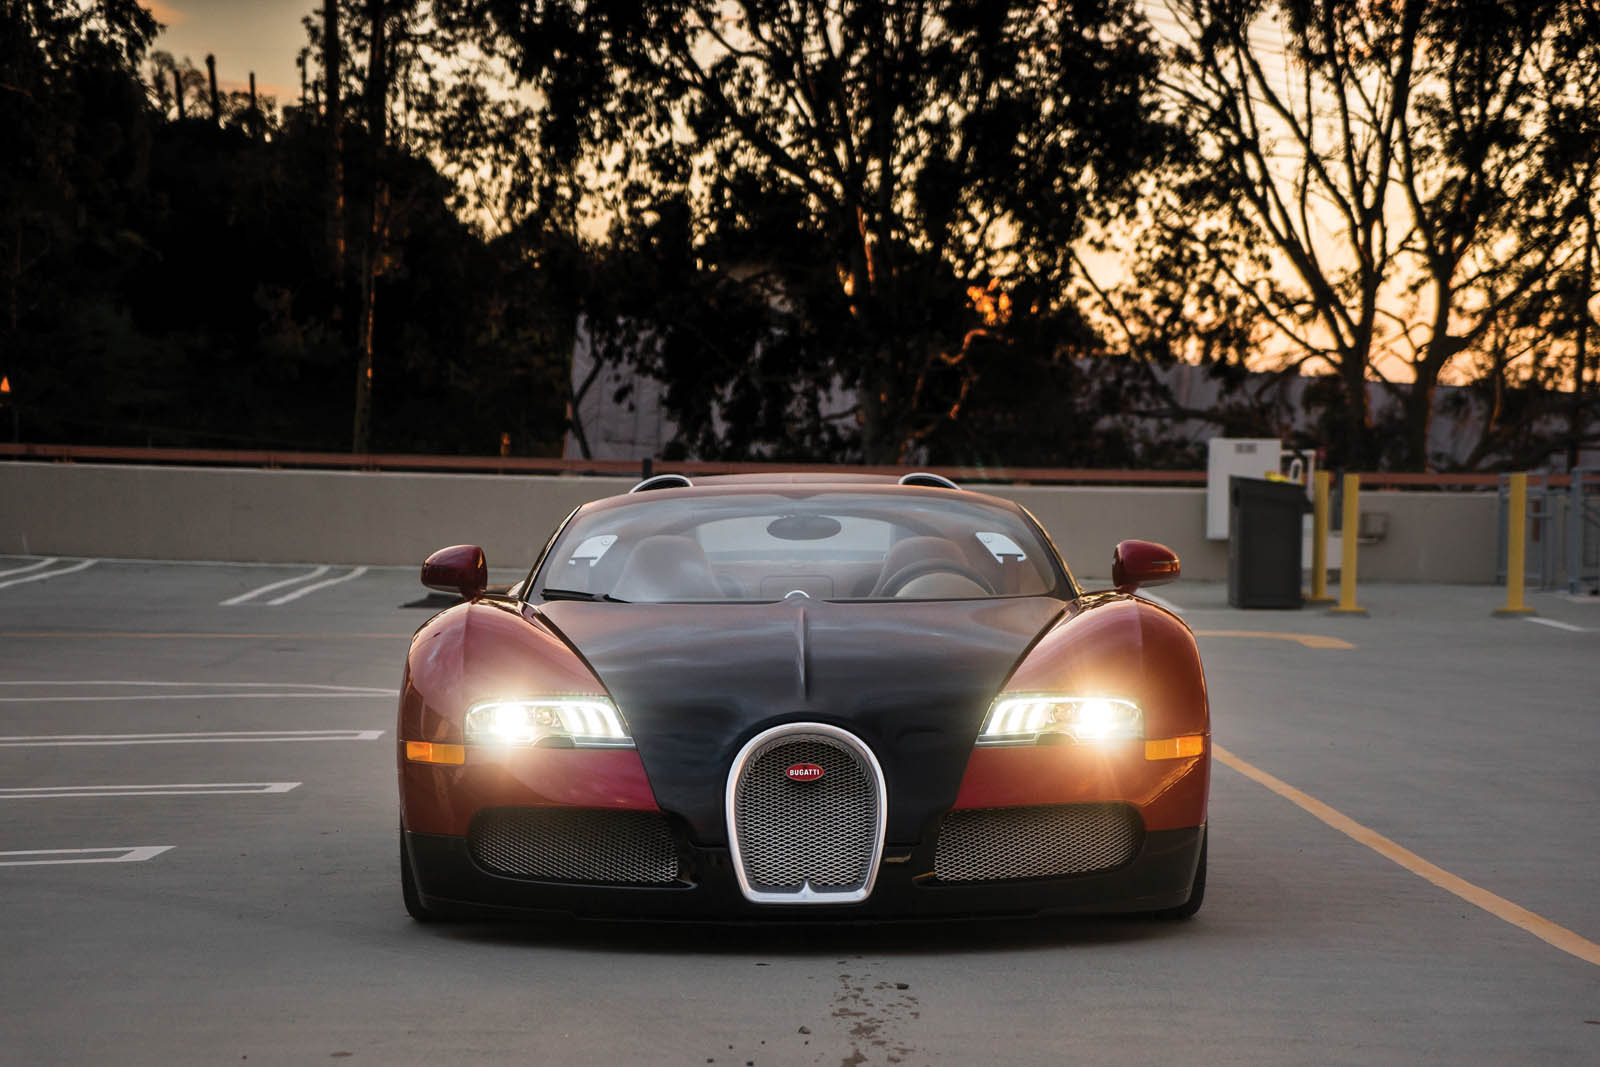 Bugatti_Veyron_Grand_Sport_for_sale_08